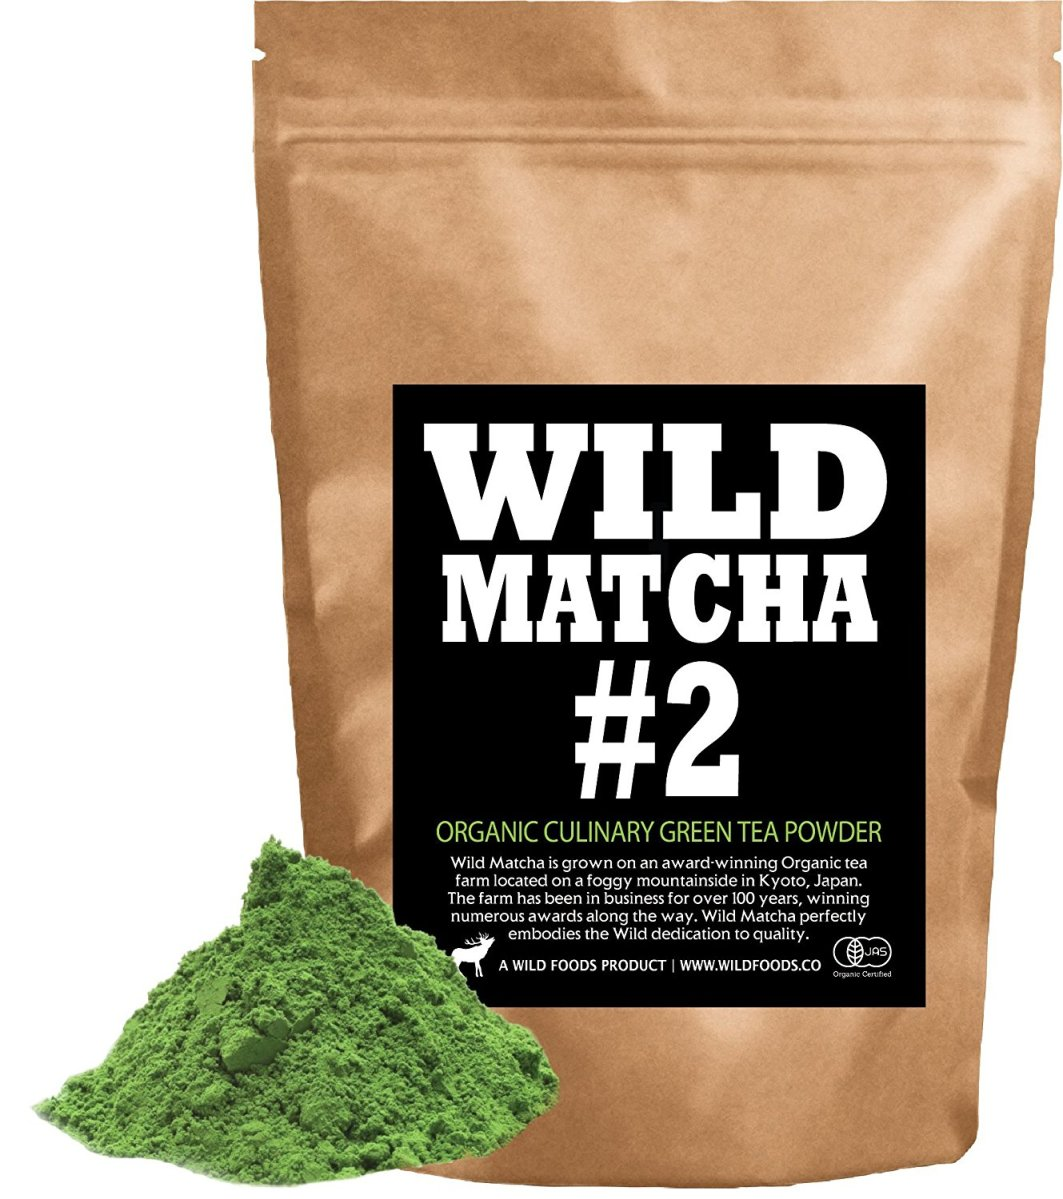 How to Quit Harmful Pre-Workout Supplements and Drastically Reduce Coffee by Going Green (Matcha)